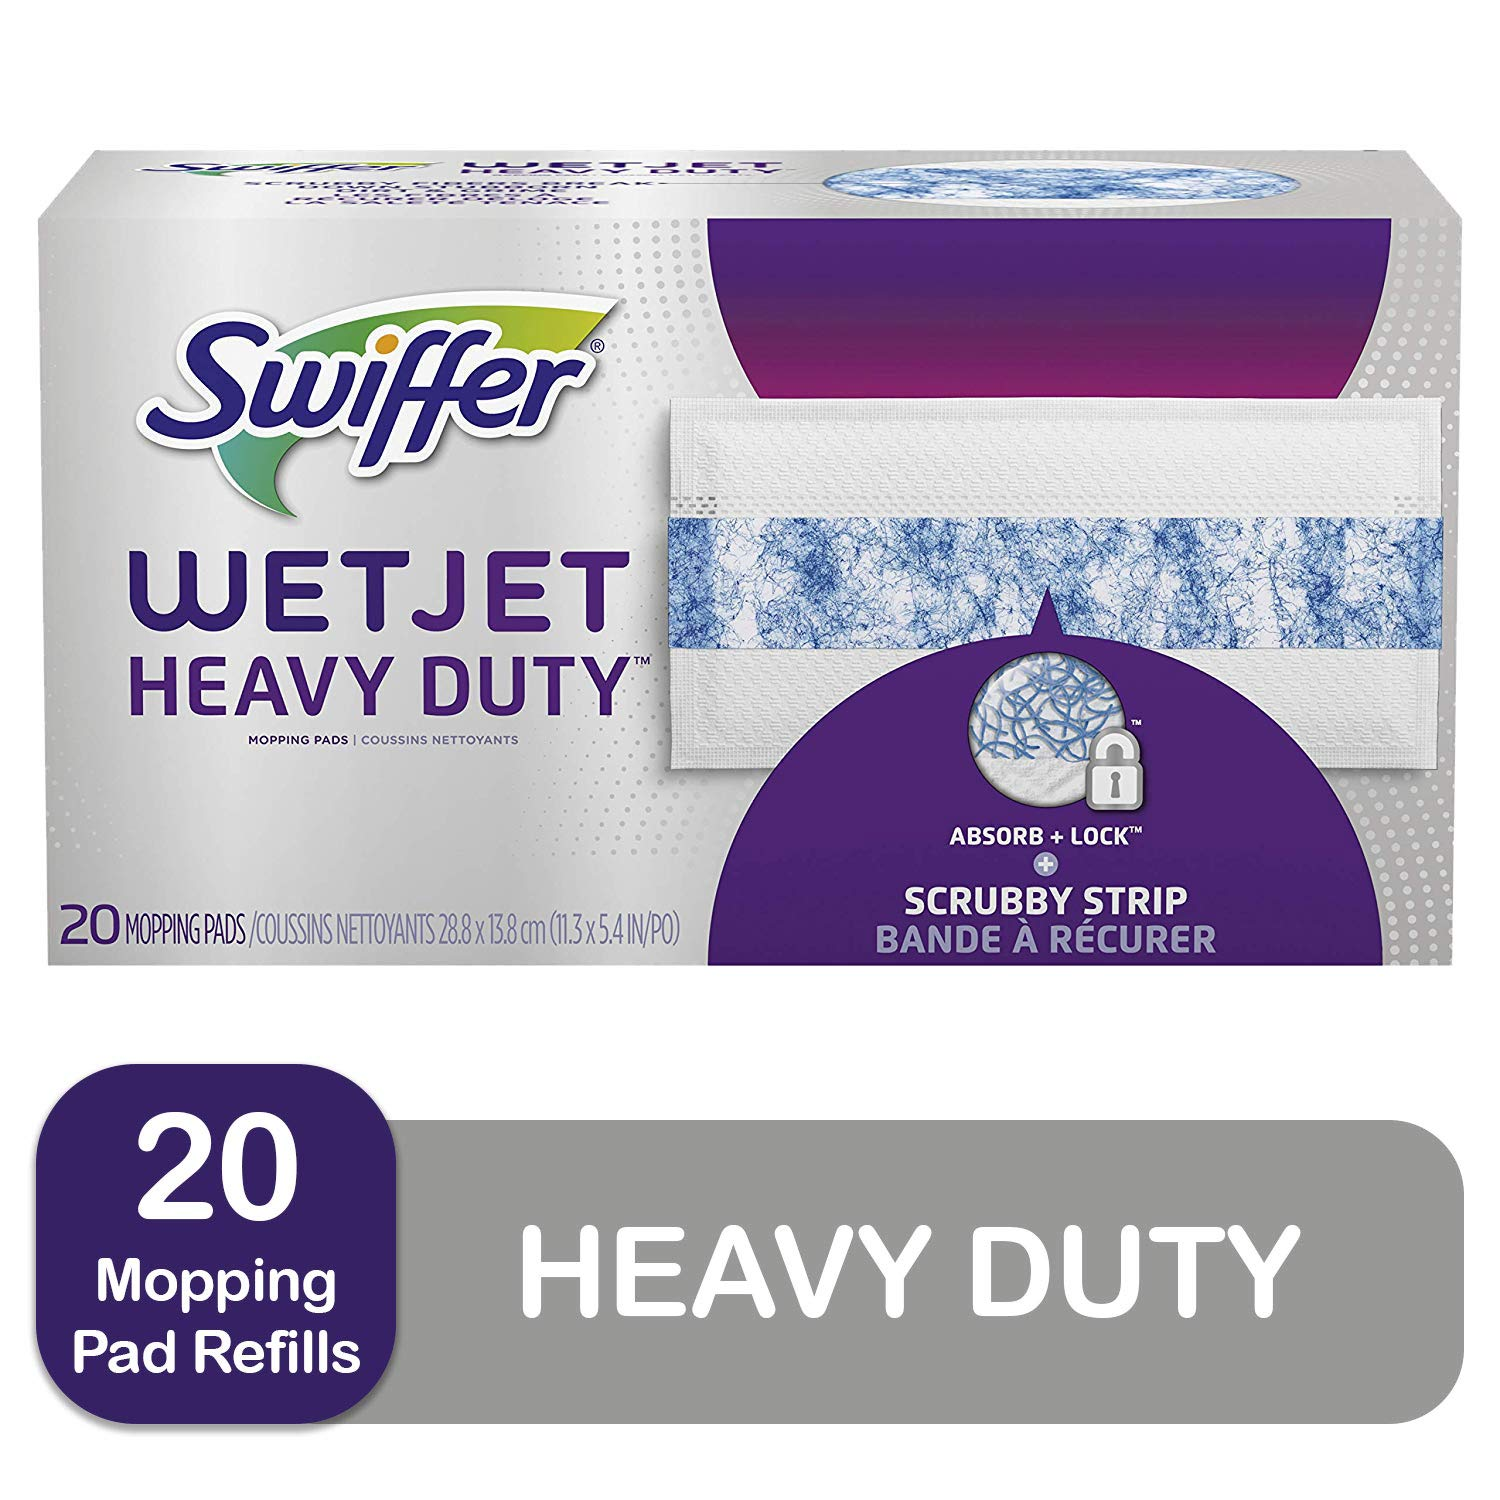 Swiffer Wetjet Heavy Duty Mop Pad Refills for Floor Mopping and Cleaning, All Purpose Multi Surface Floor Cleaning…